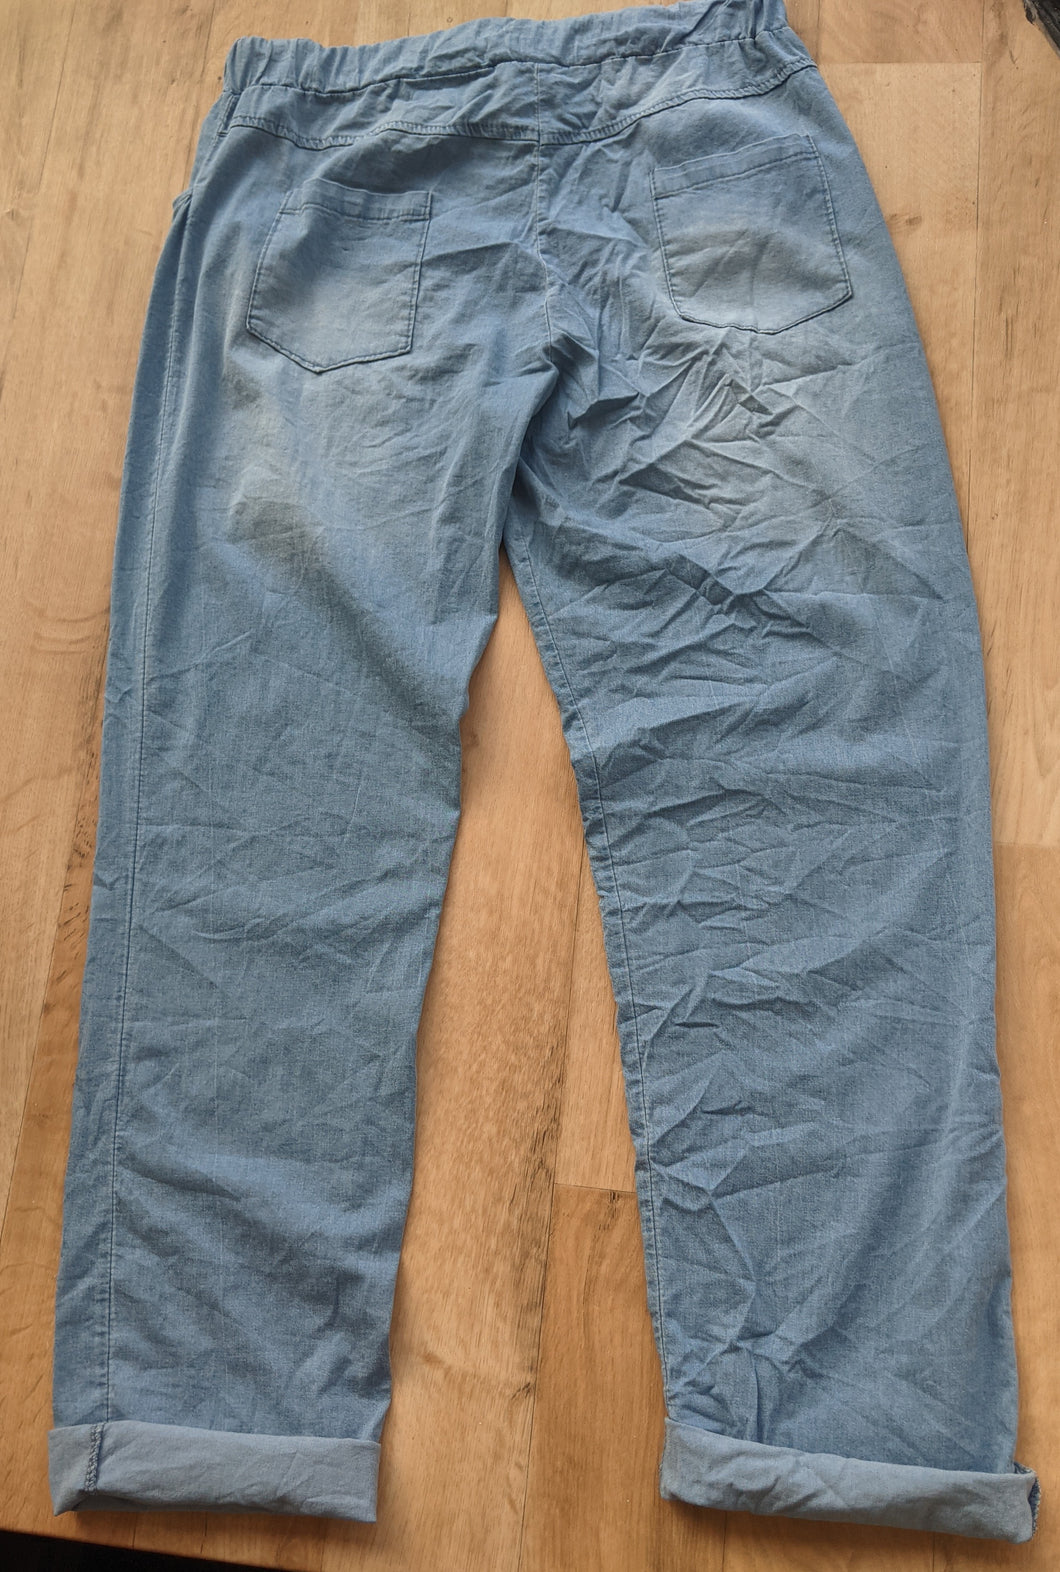 Lightweight Denim Look Drawstring Trousers - Faded Look For Size 14 to 22